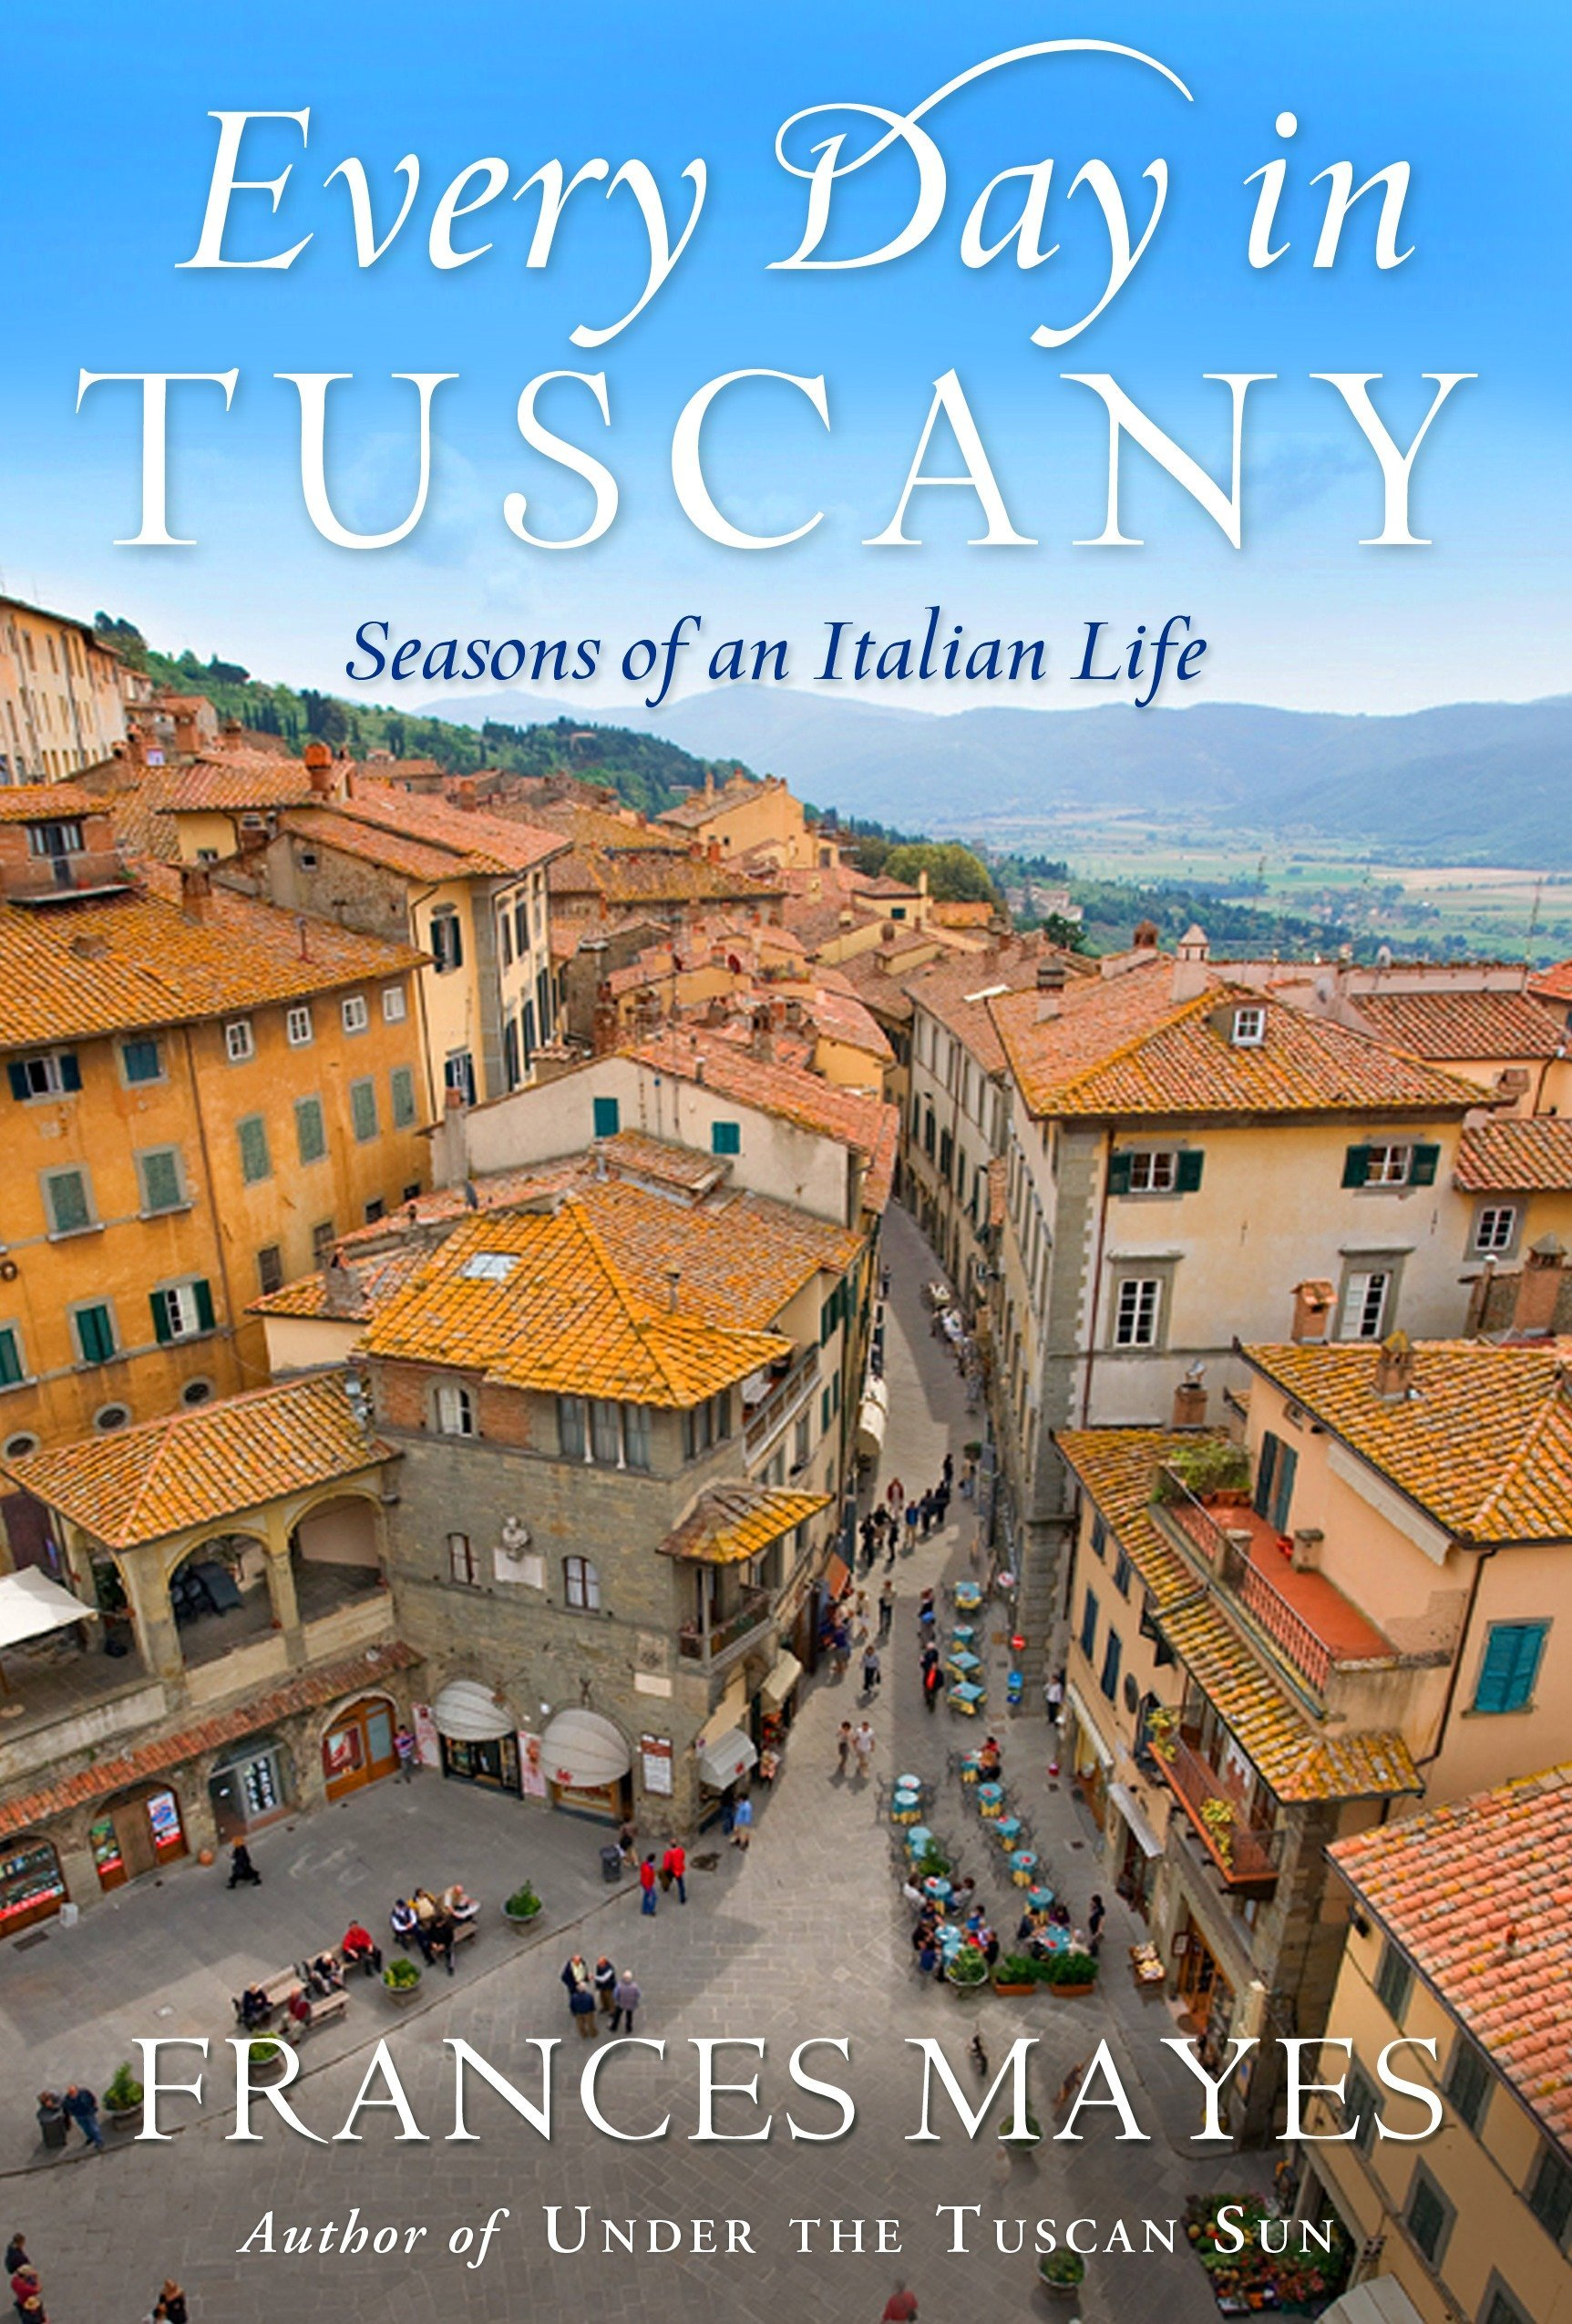 Every Day in Tuscany: Seasons of an Italian Life pdf